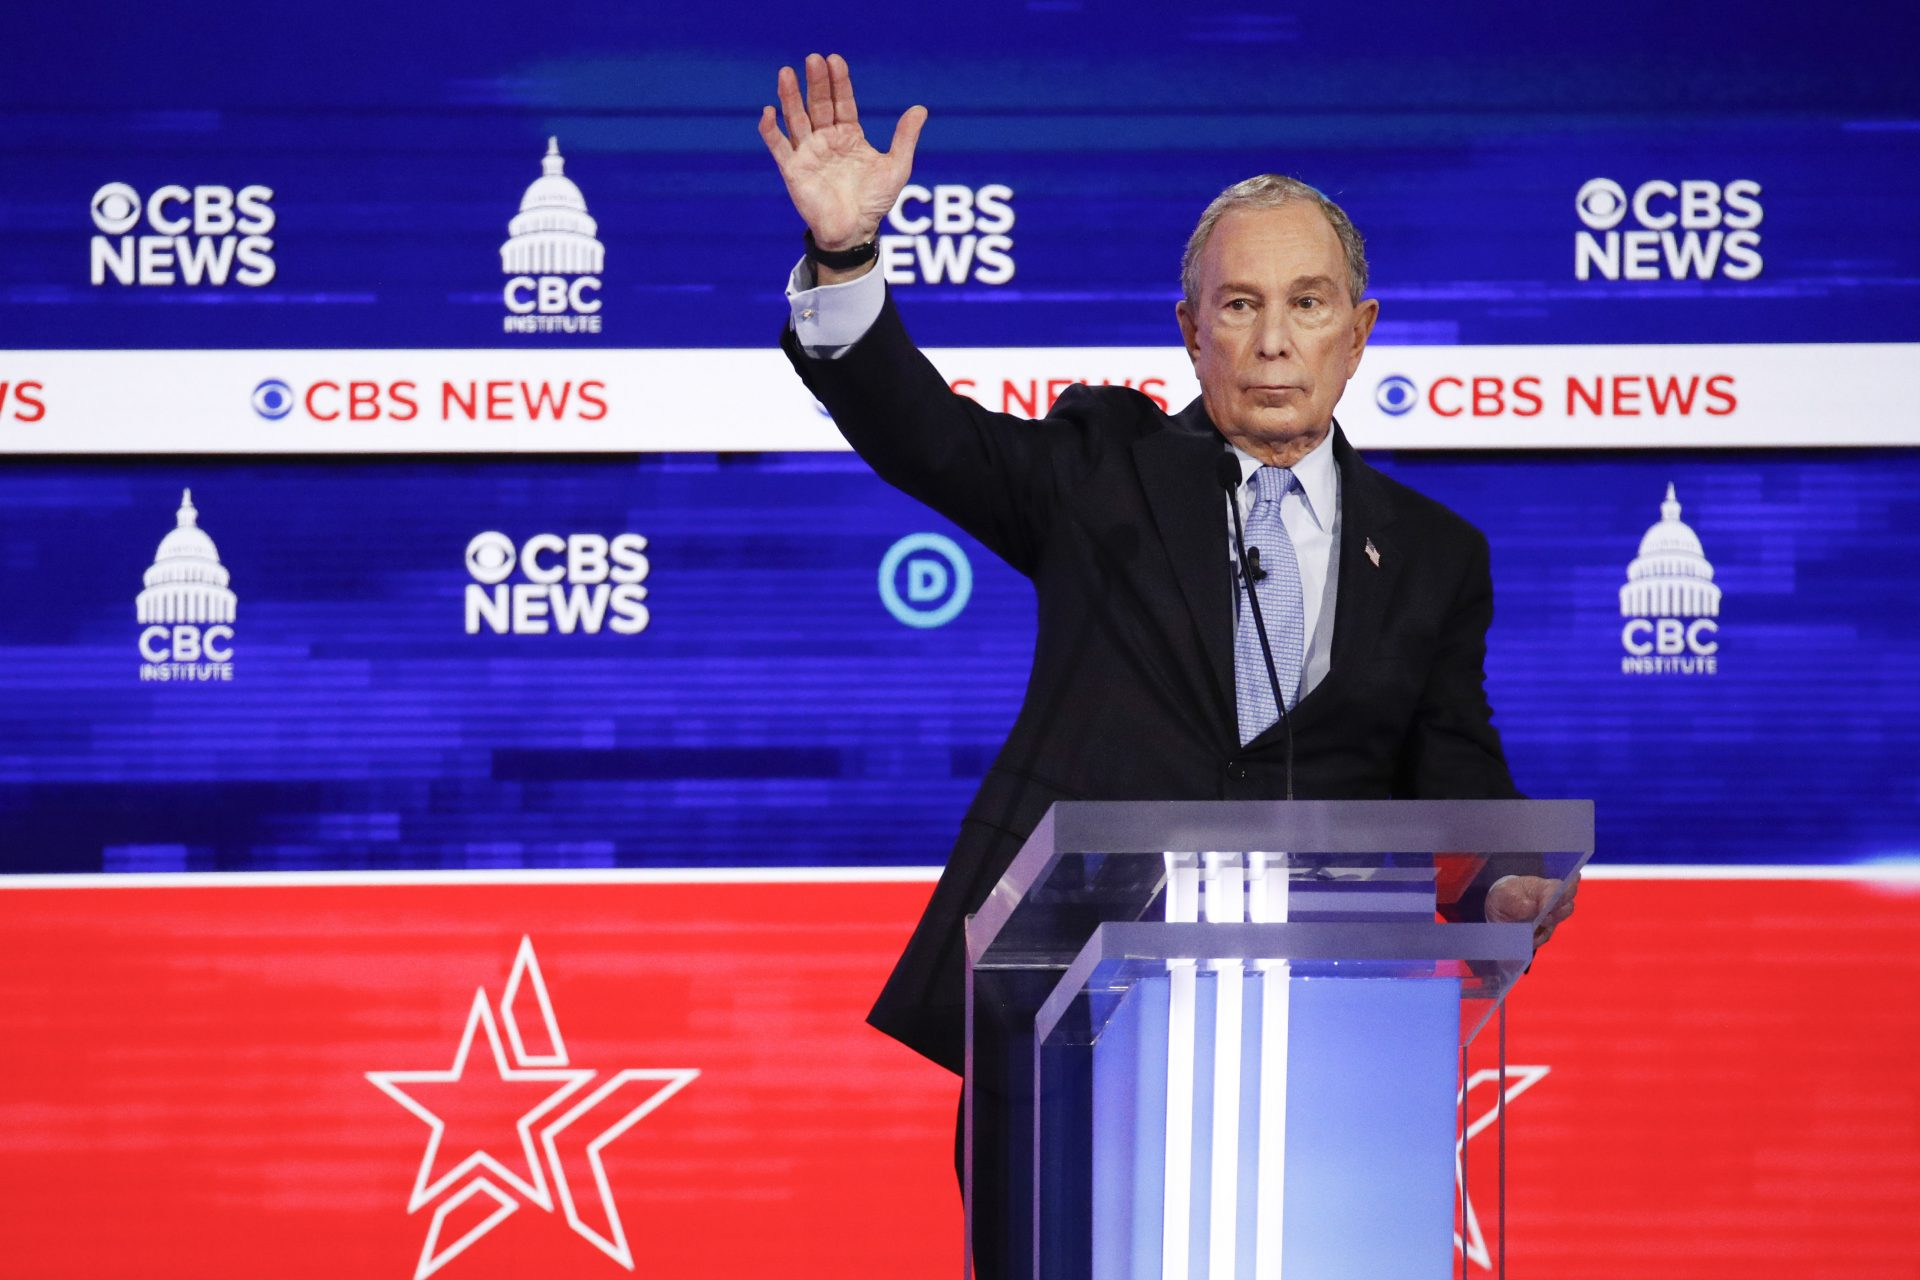 Democratic presidential candidates, former New York City Mayor Mike Bloomberg, raises his hand during the Democratic presidential primary debate at the Gaillard Center, Tuesday, Feb. 25, 2020, in Charleston, S.C., co-hosted by CBS News and the Congressional Black Caucus Institute.